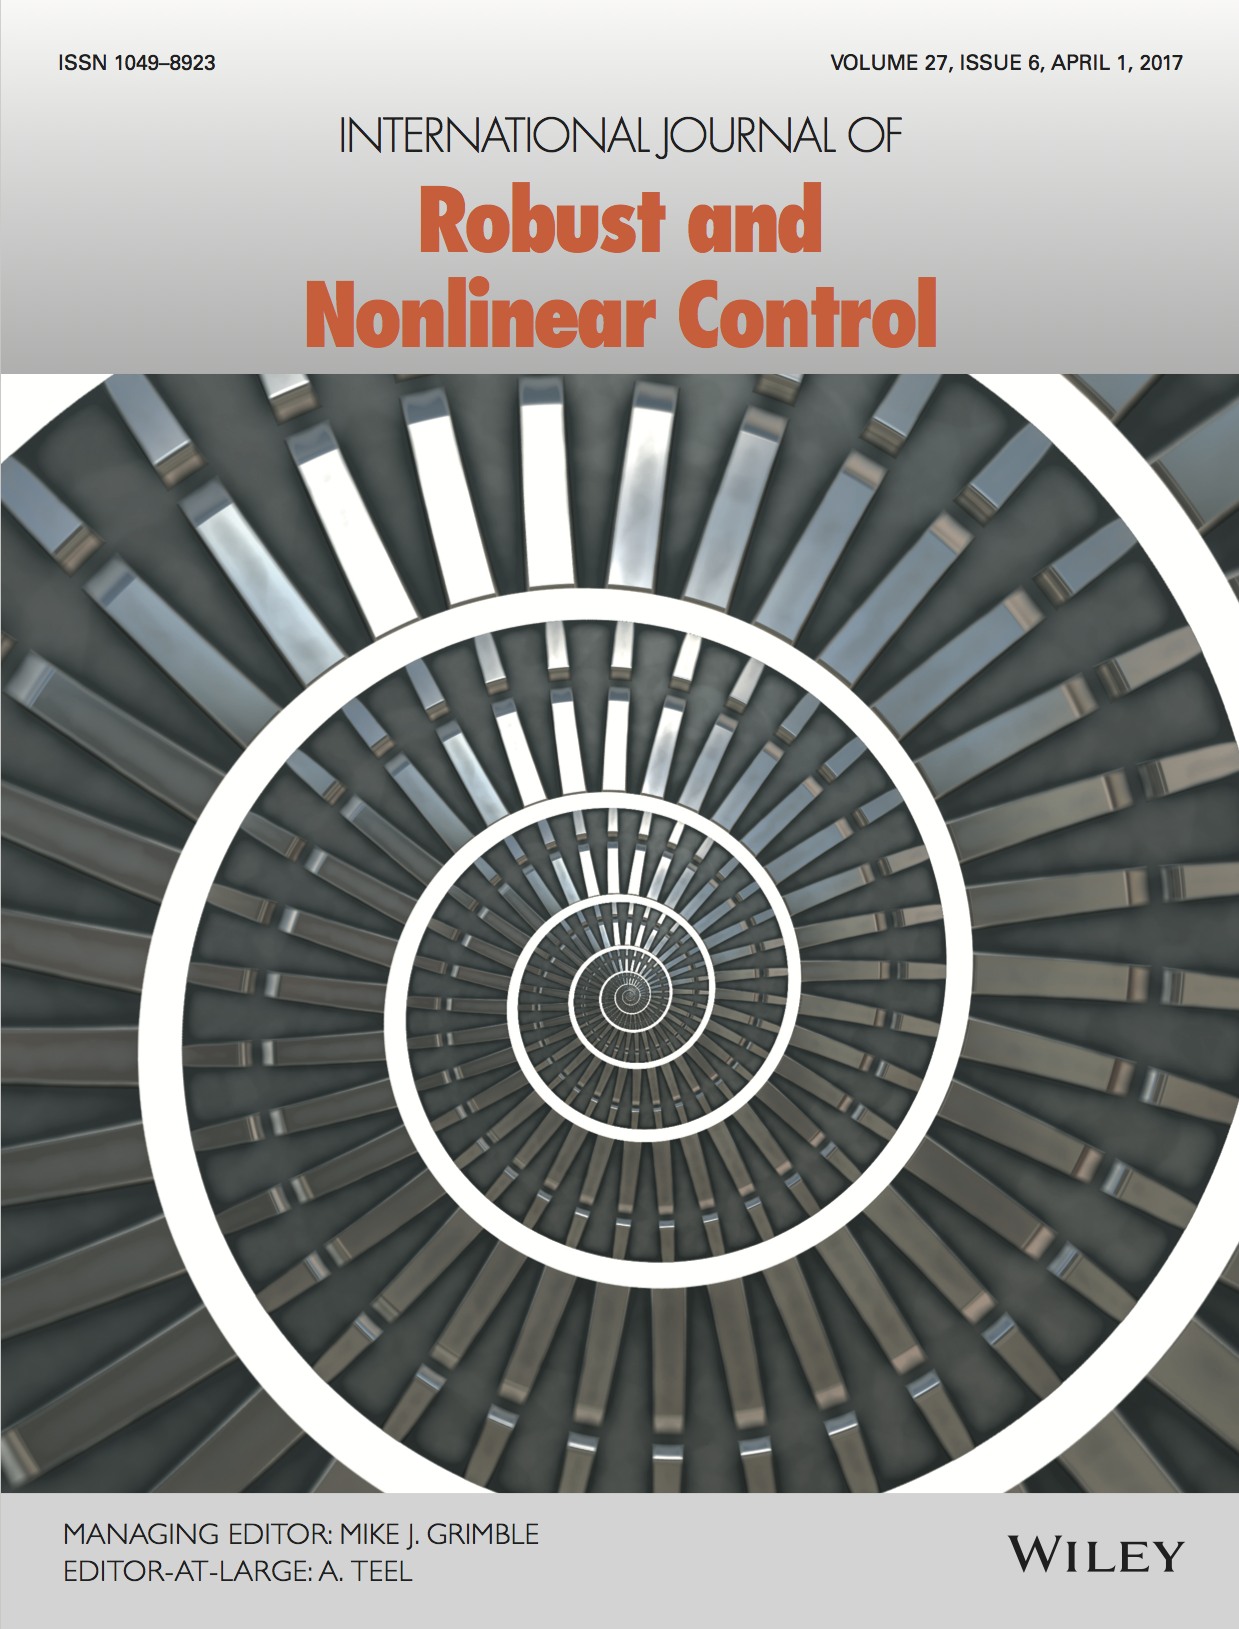 Template for submissions to International Journal of Robust and Nonlinear Control